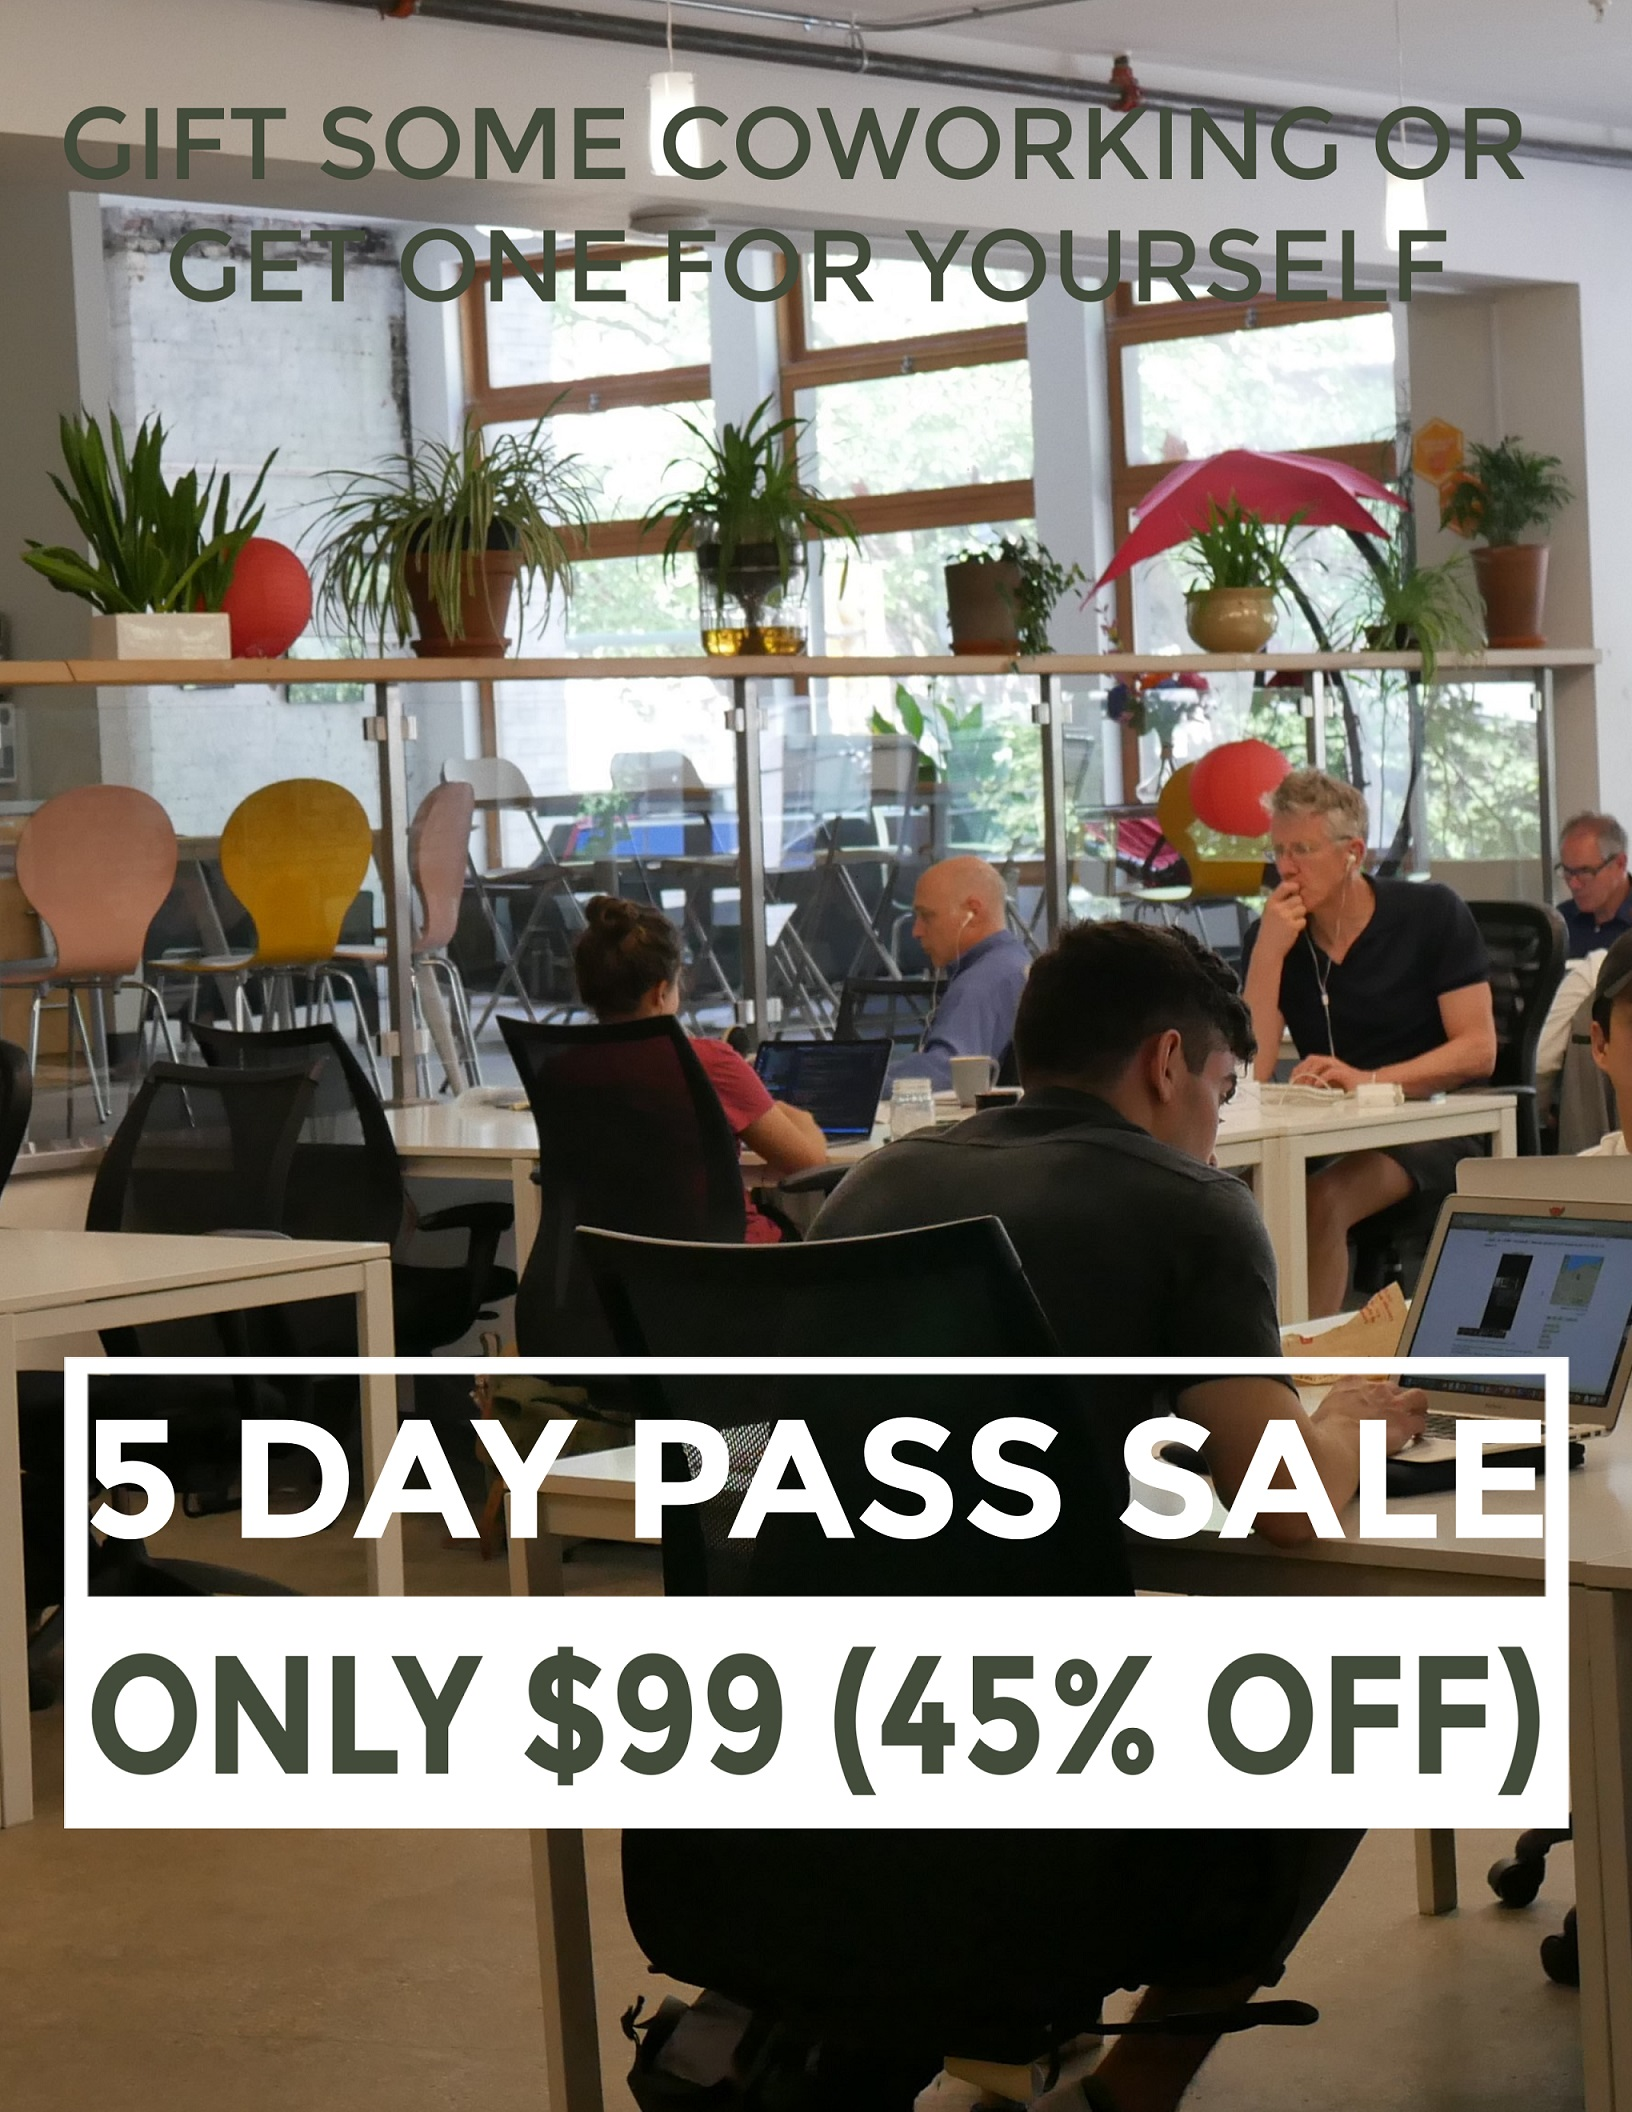 Gift some coworking or get one for yourself: 5 day pass sale - only $99 (45% off)